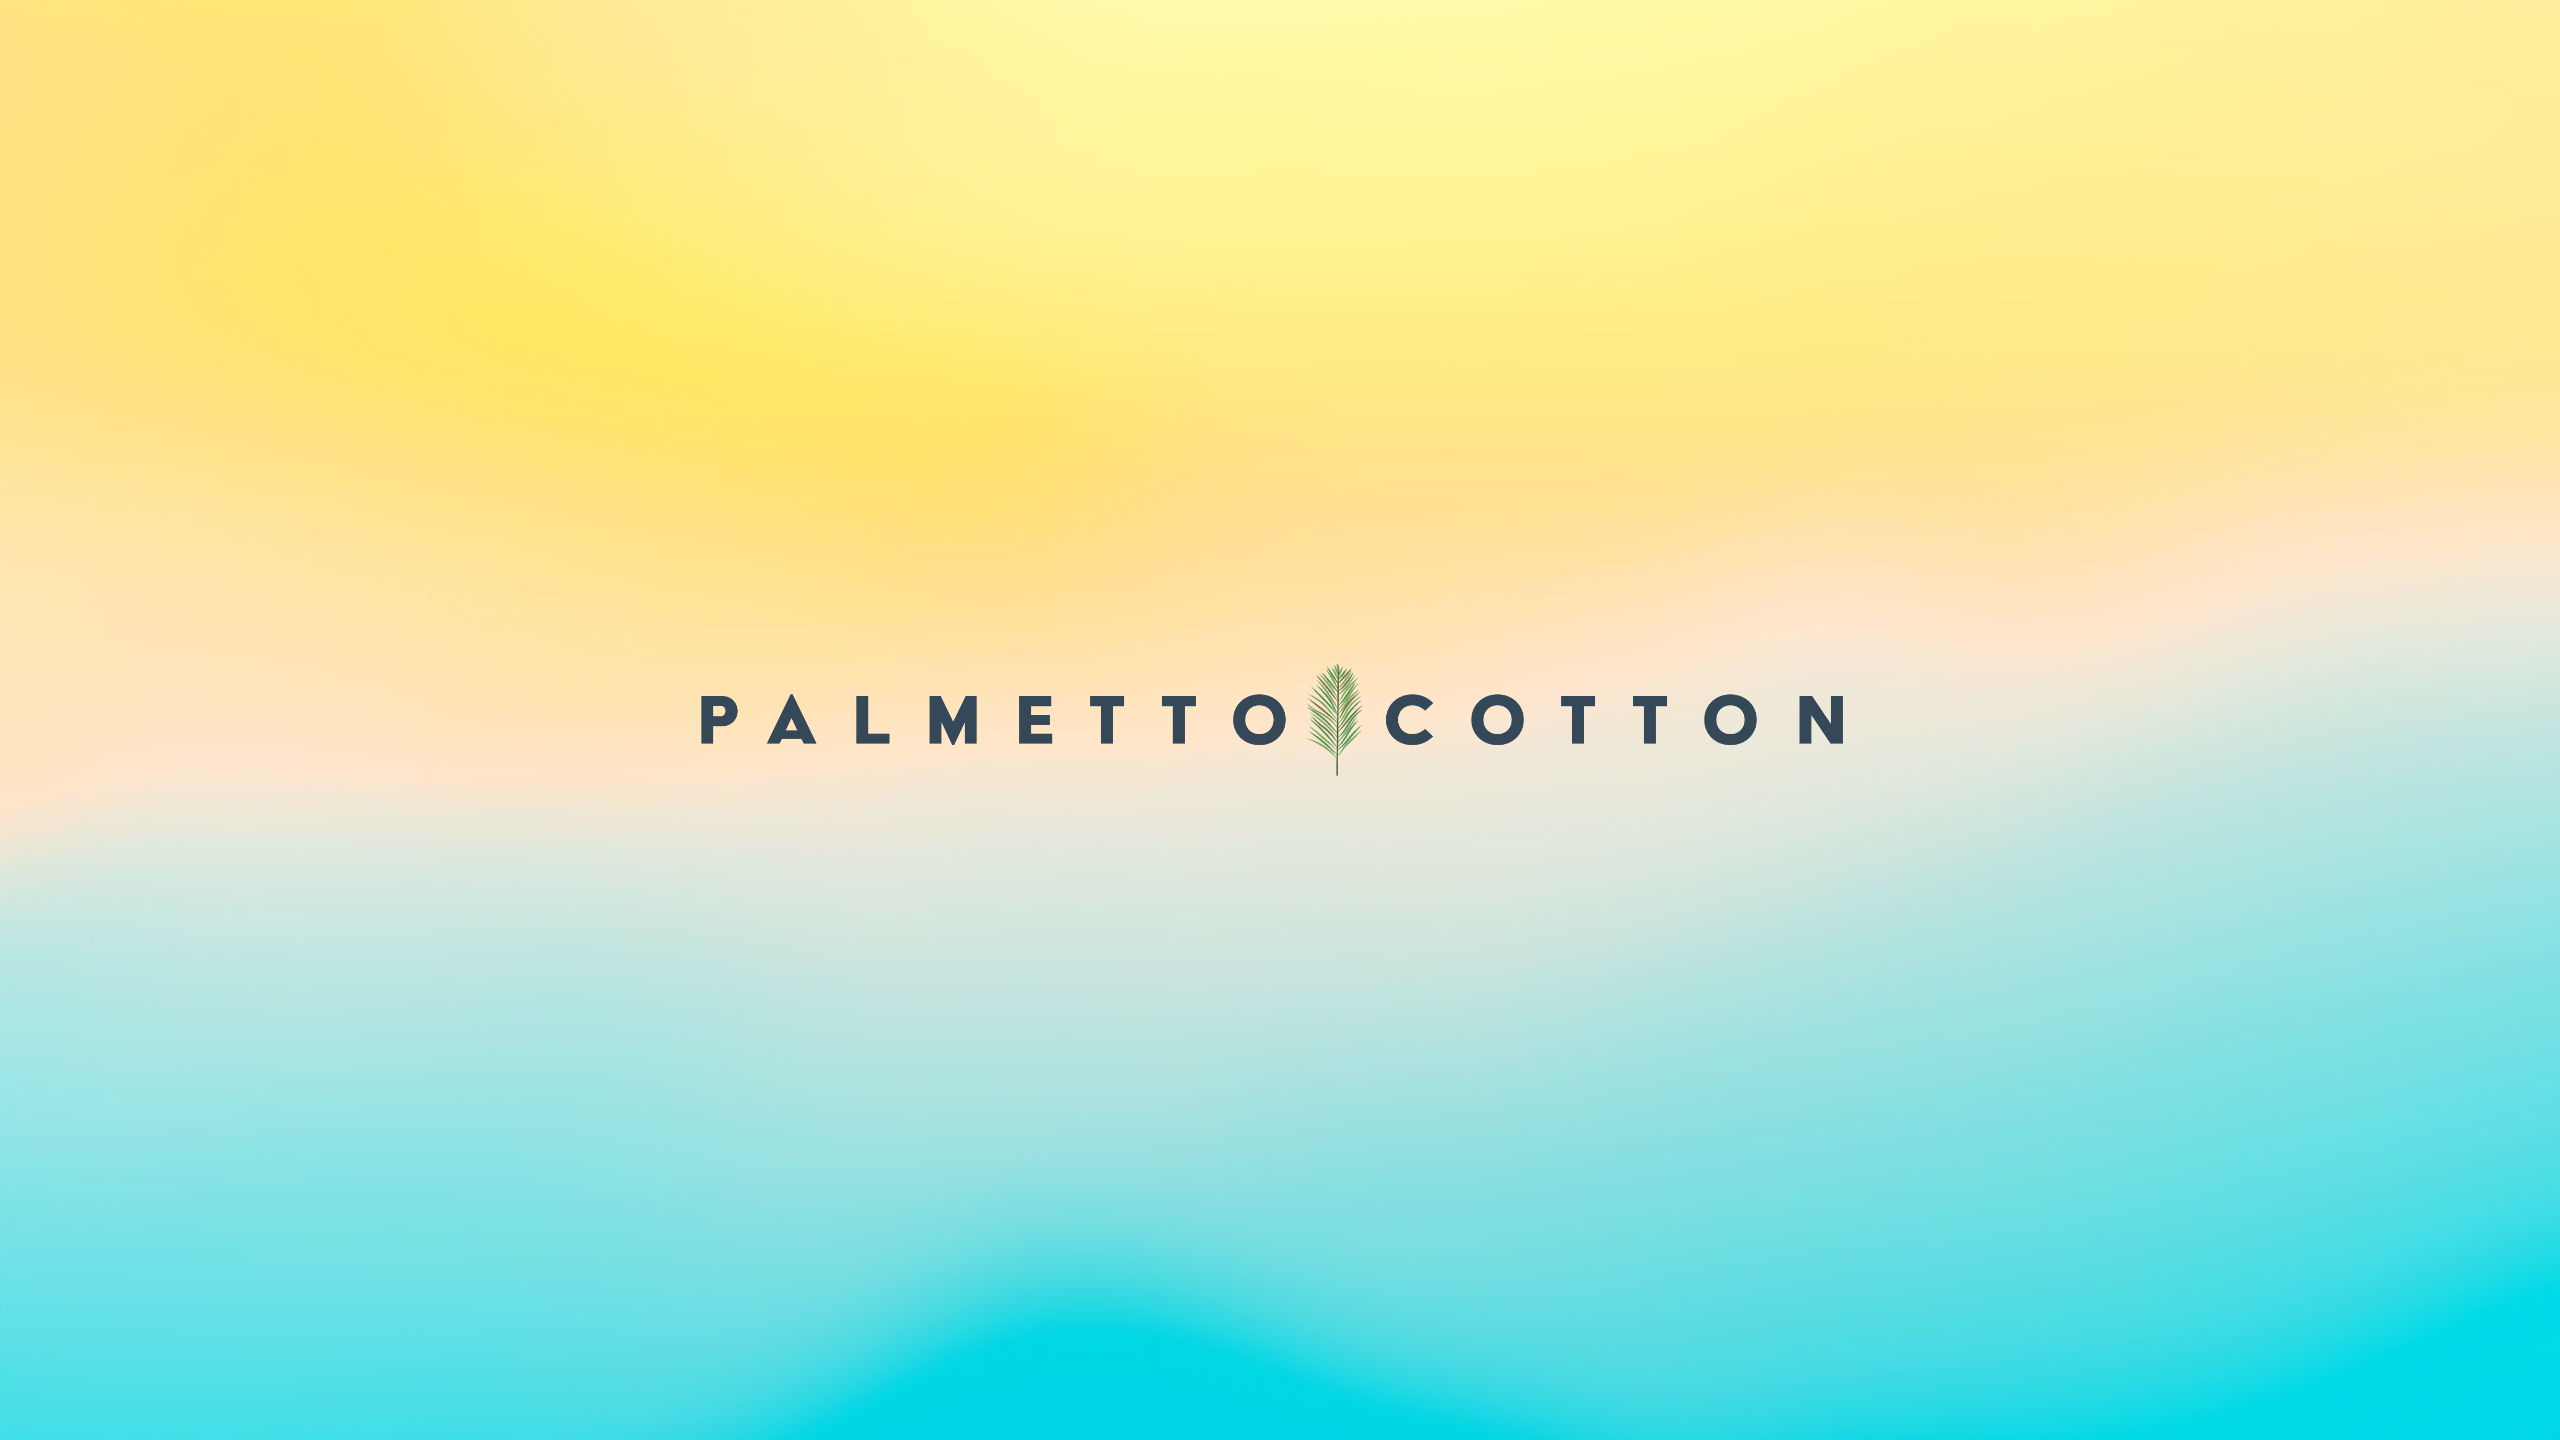 Palmetto Cotton Logo